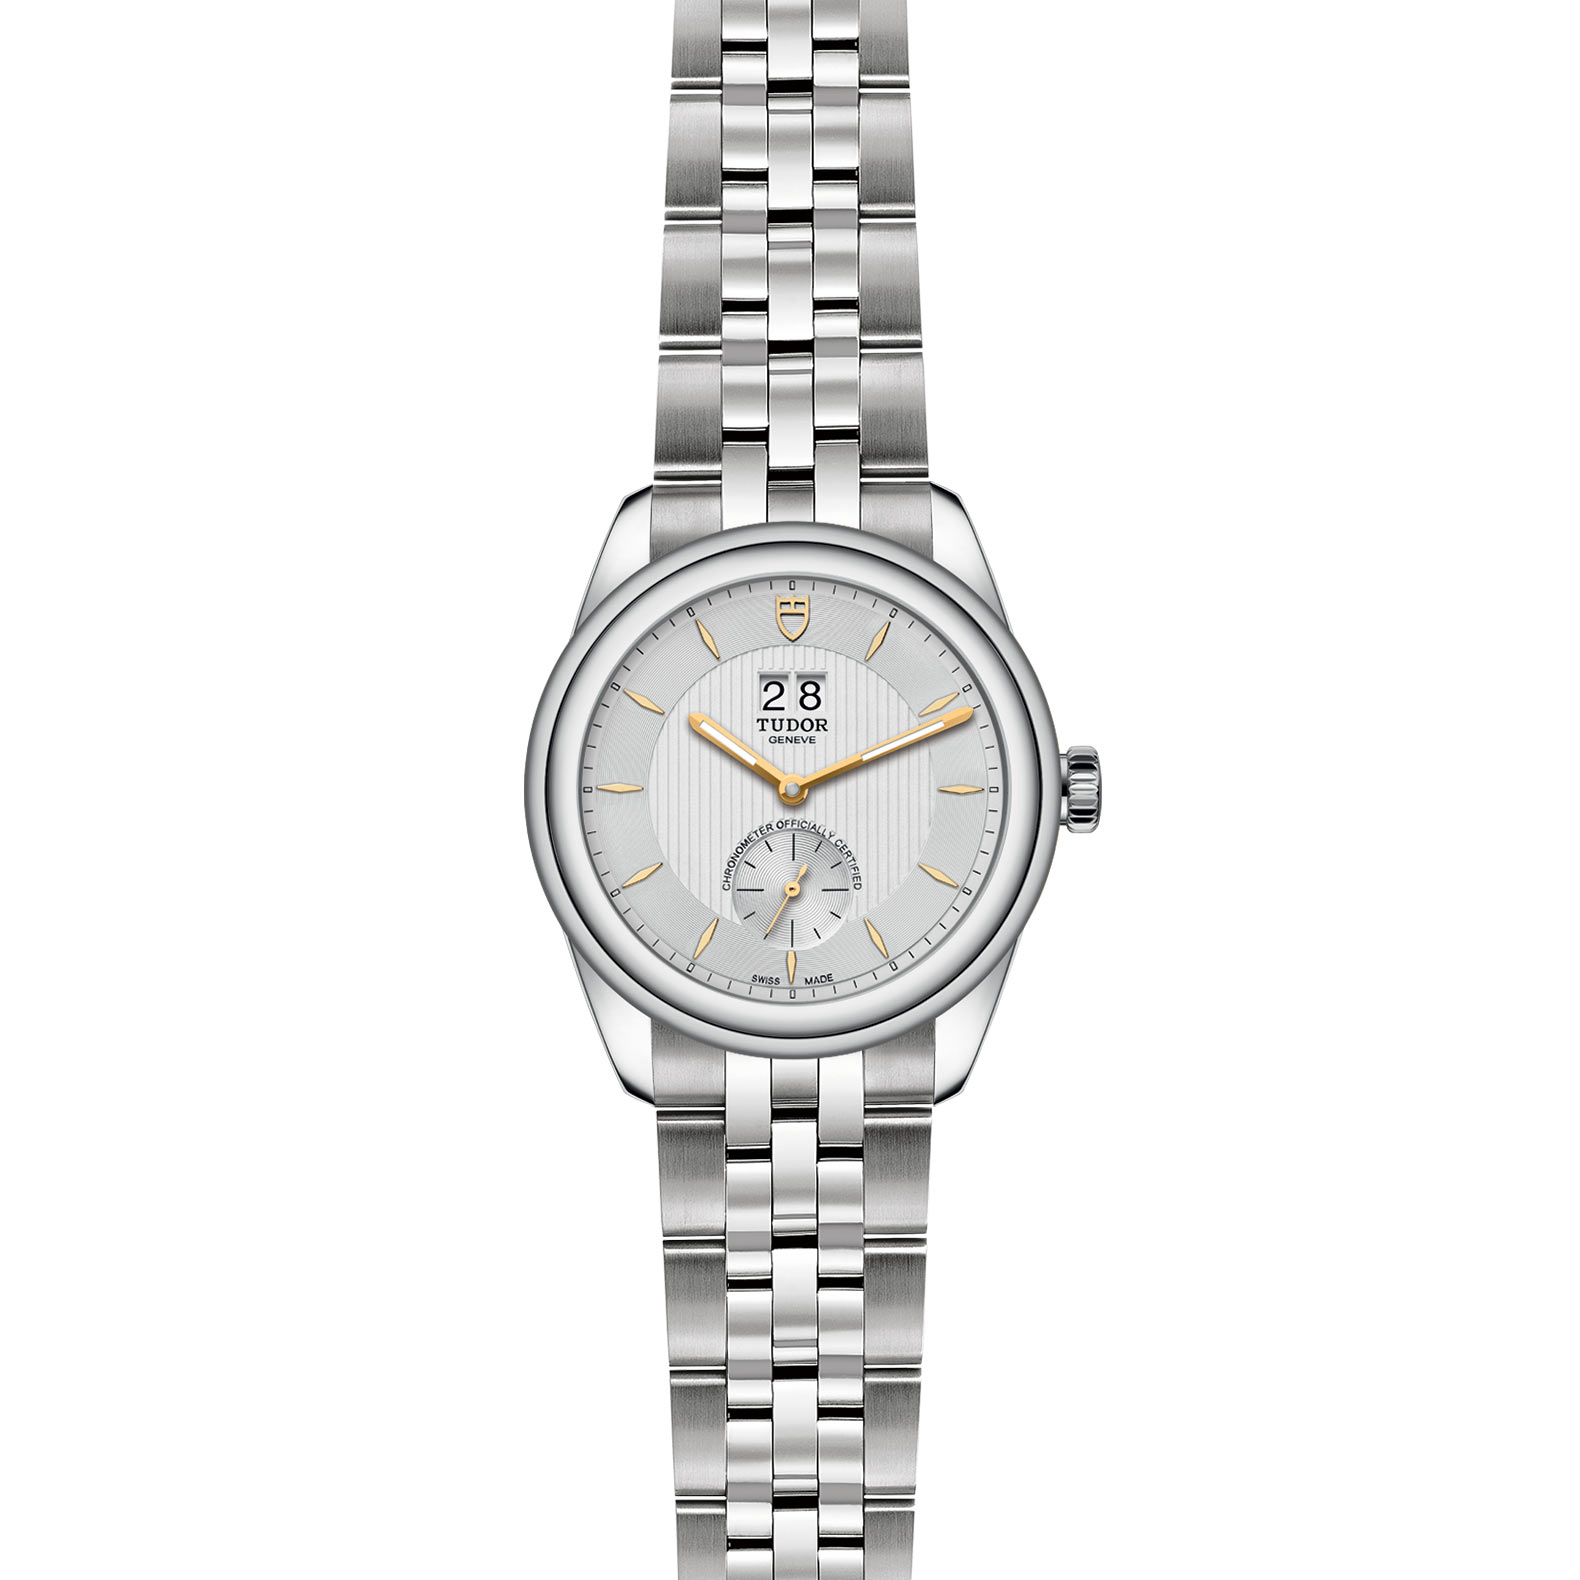 TUDOR Glamour Double Date M57100 0002 Frontfacing